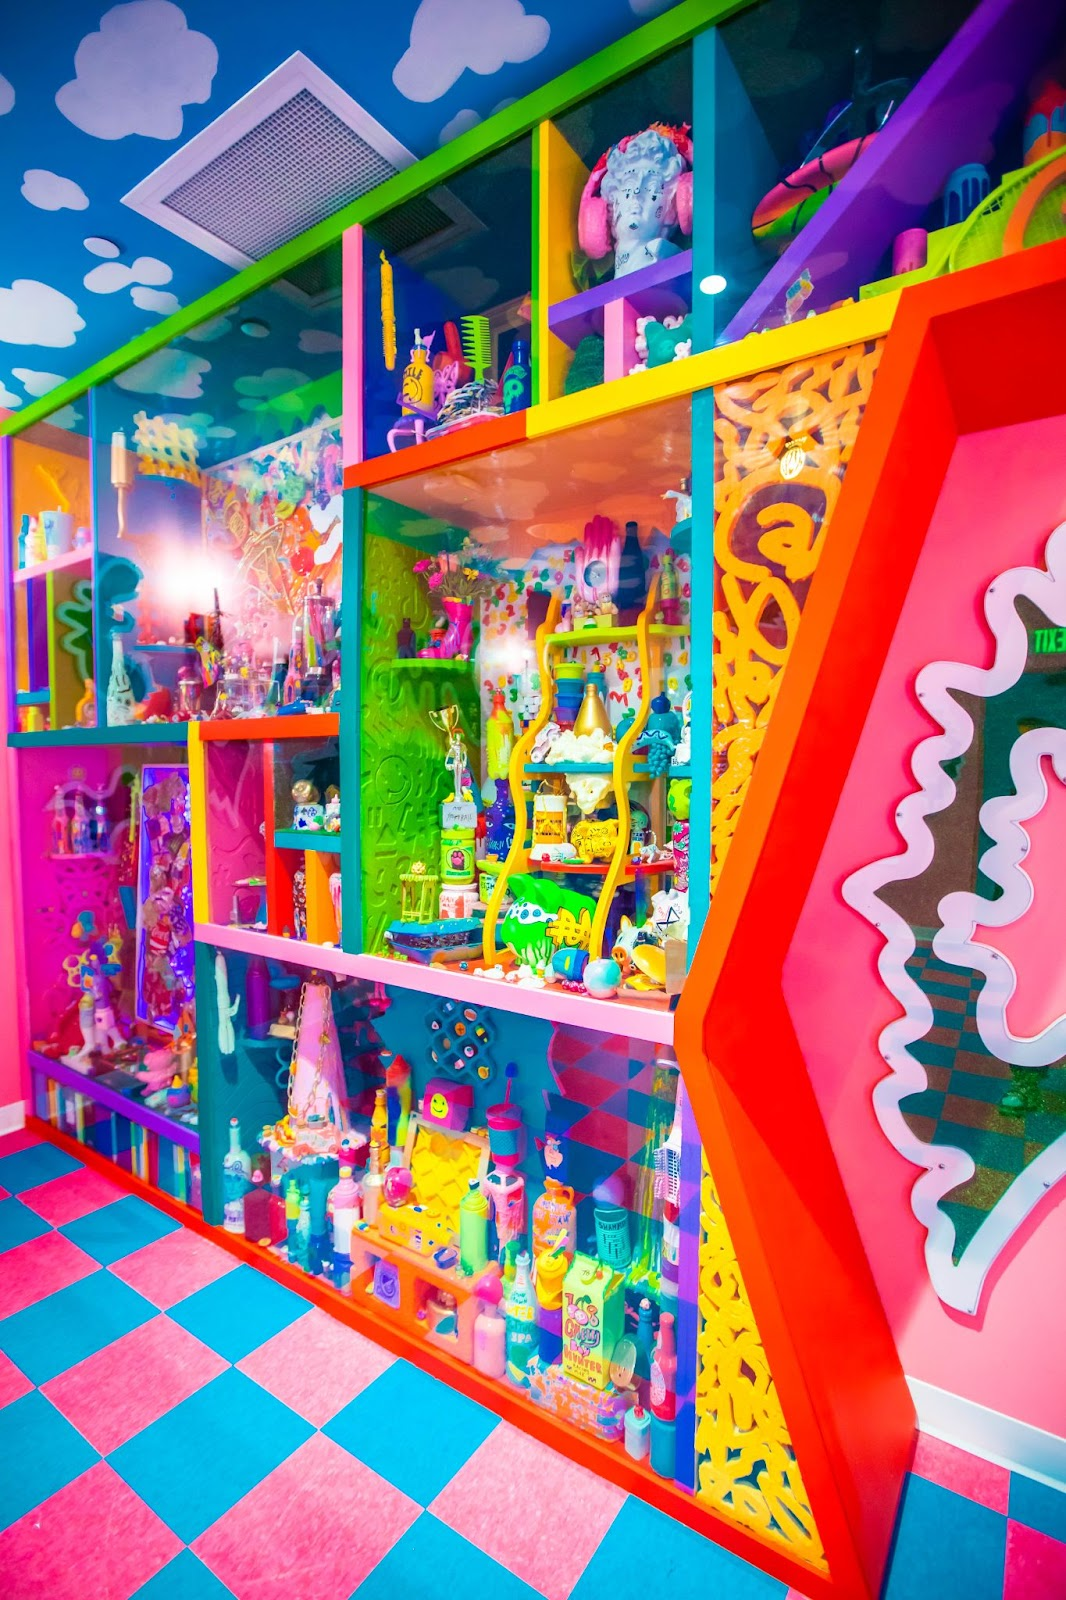 Brightly colored shelves with lots of hair styling products, also brightly colored